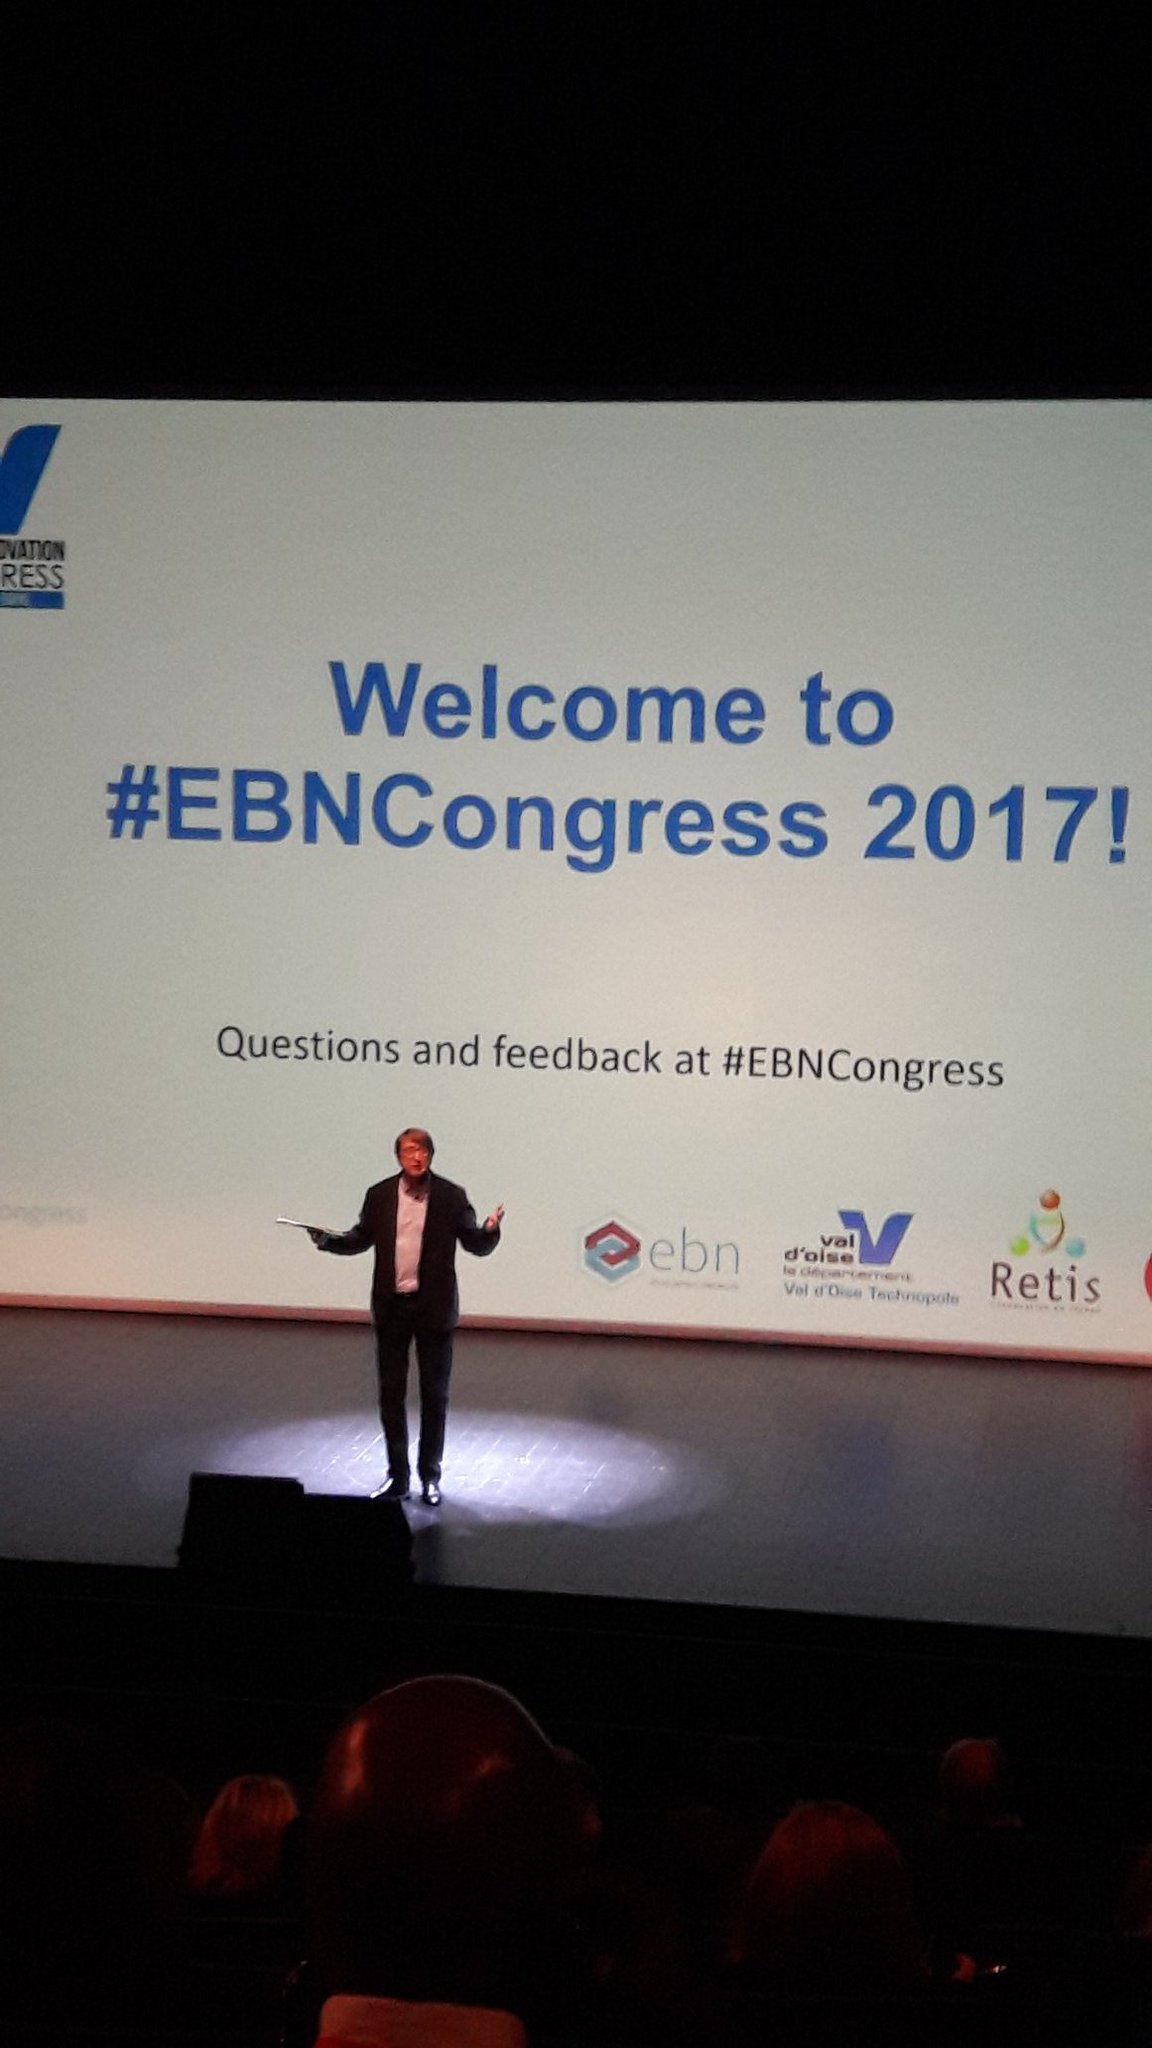 Peter Woodward kicking off #EBNCONGRESS with an impressive entrance. 12 speakers coming up... https://t.co/xwSxCKBRCT